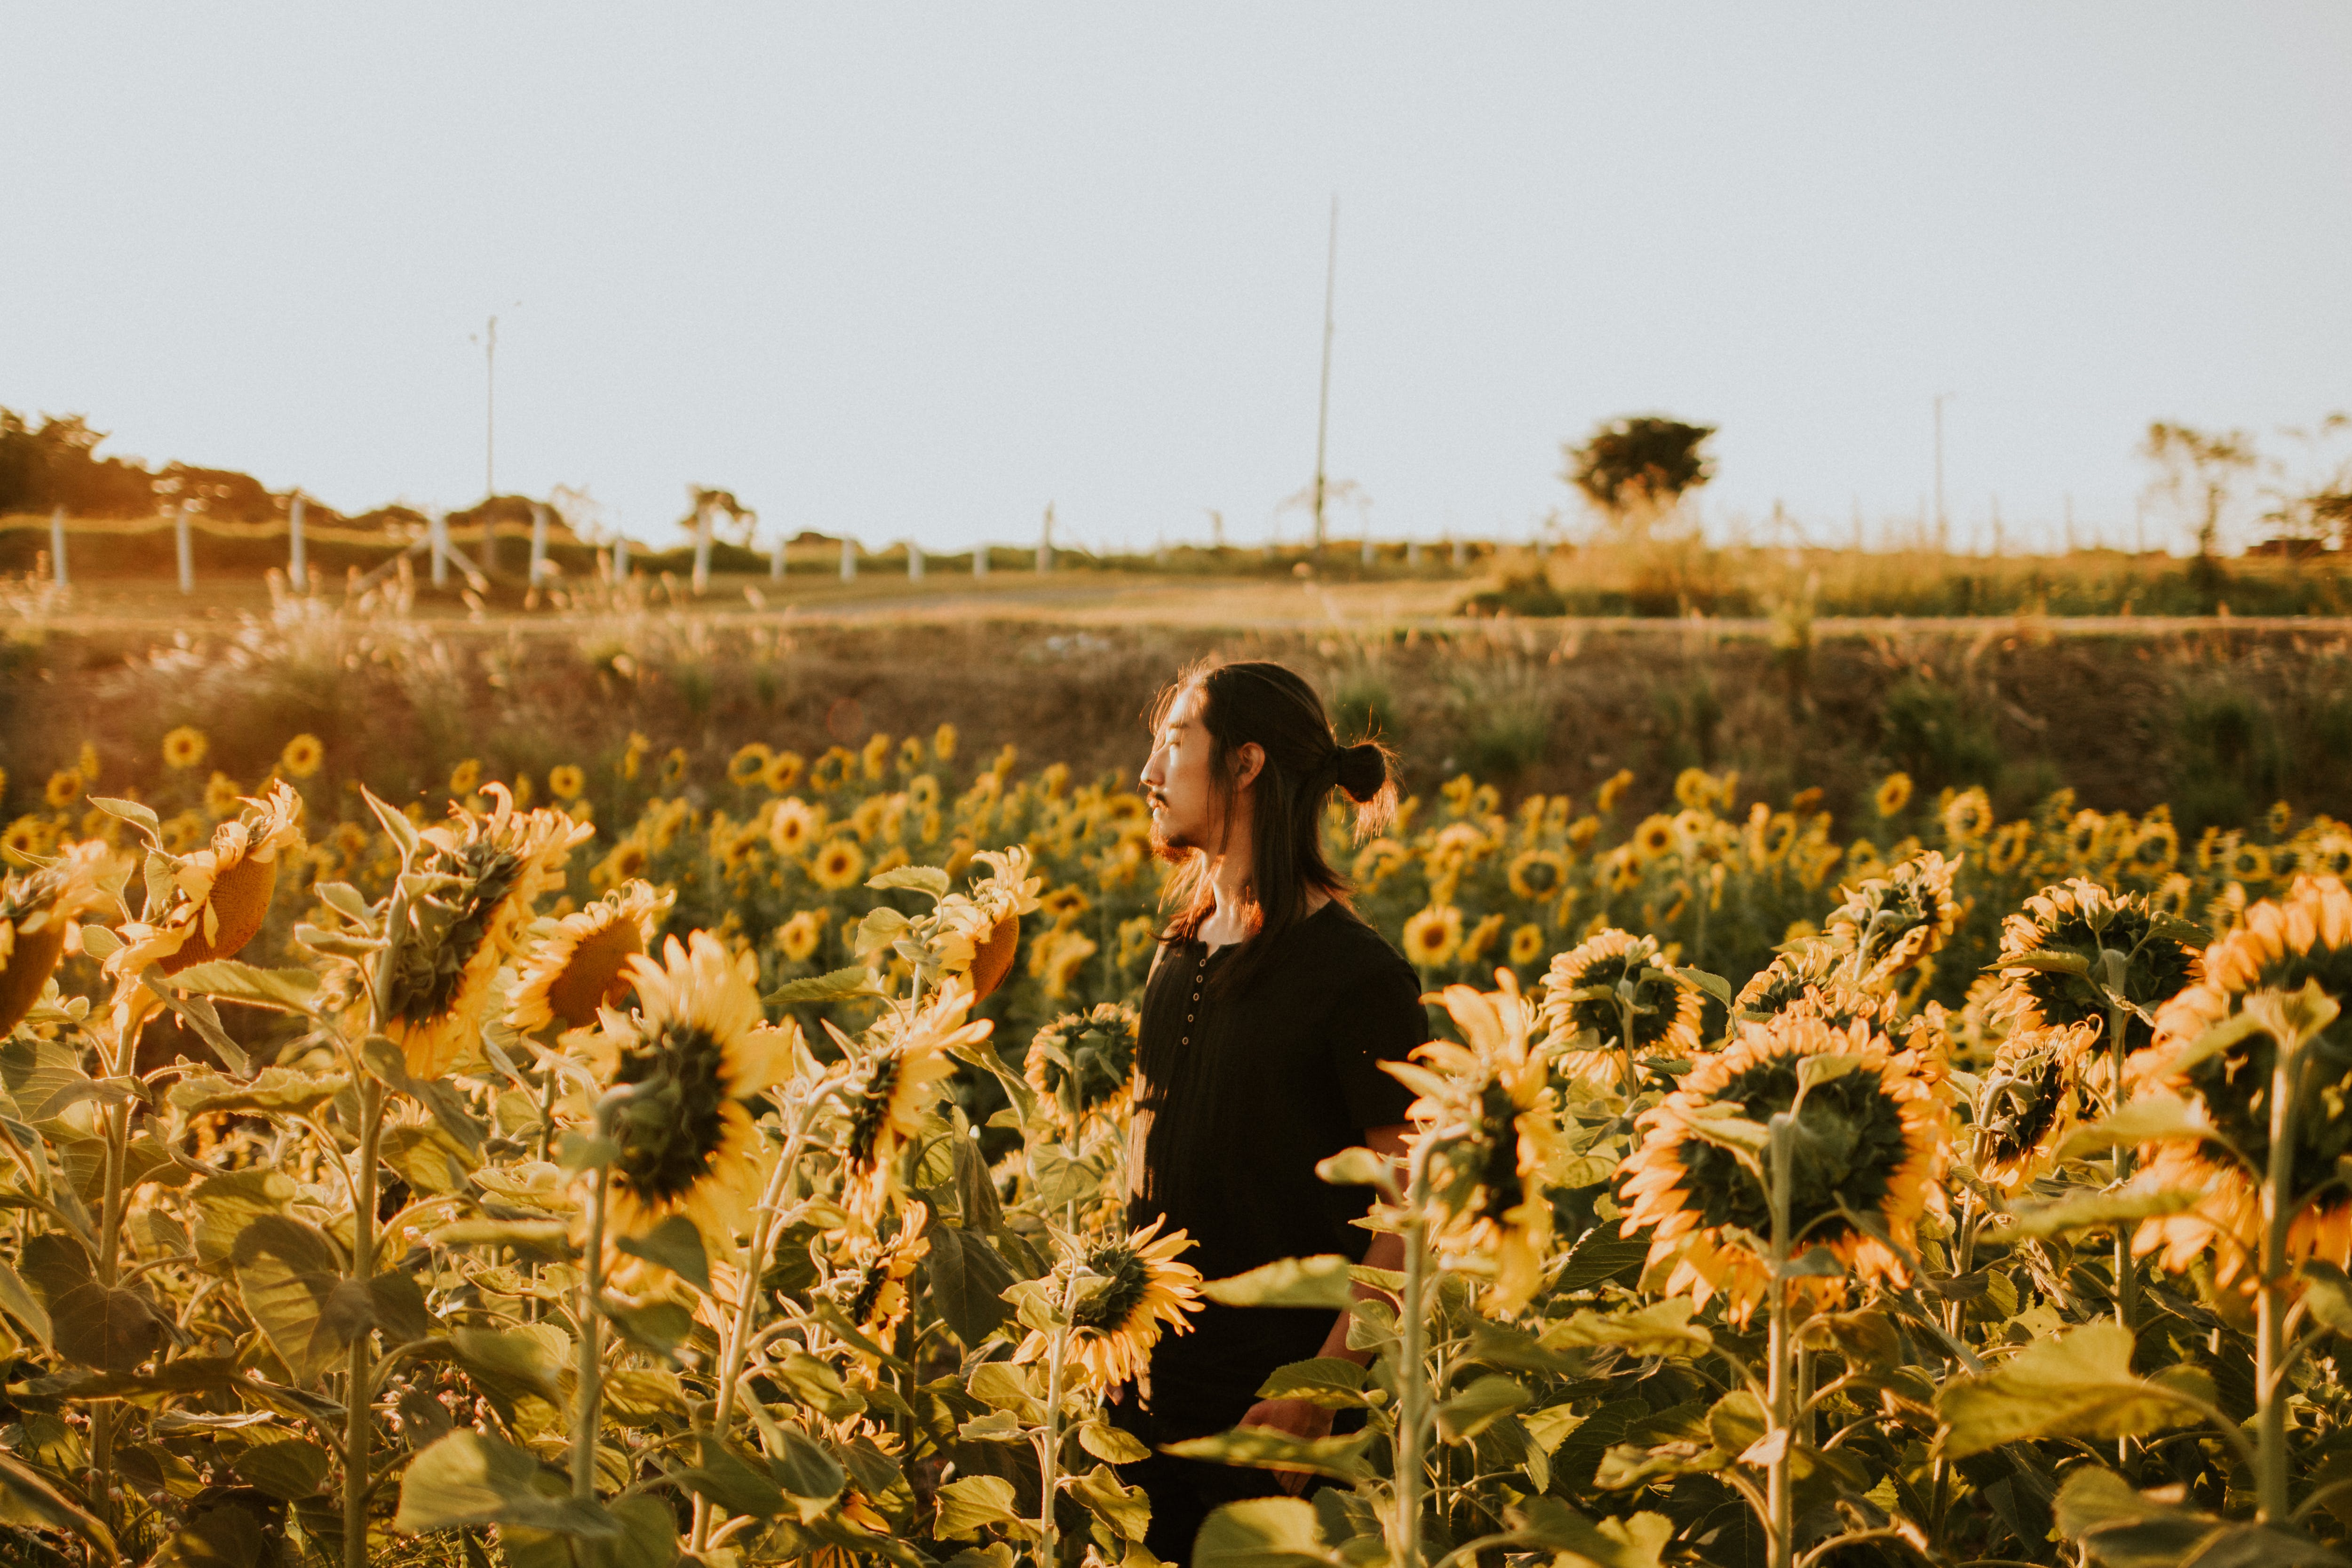 Selective Focus Photography of Man Standing and Surrounded by Sunflower